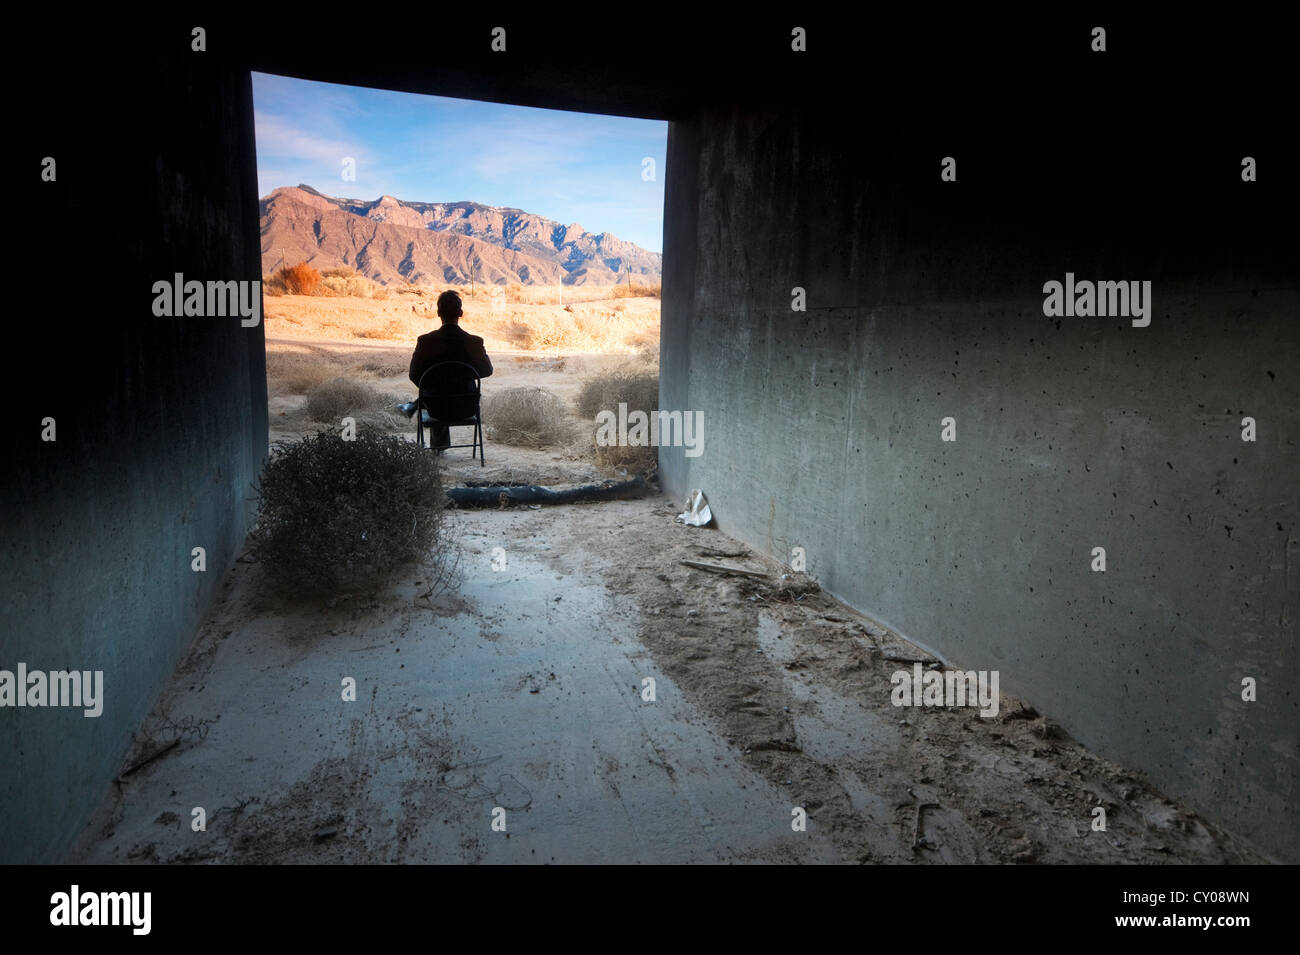 Silhouette of male figure sitting in tunnel in desert - Stock Image